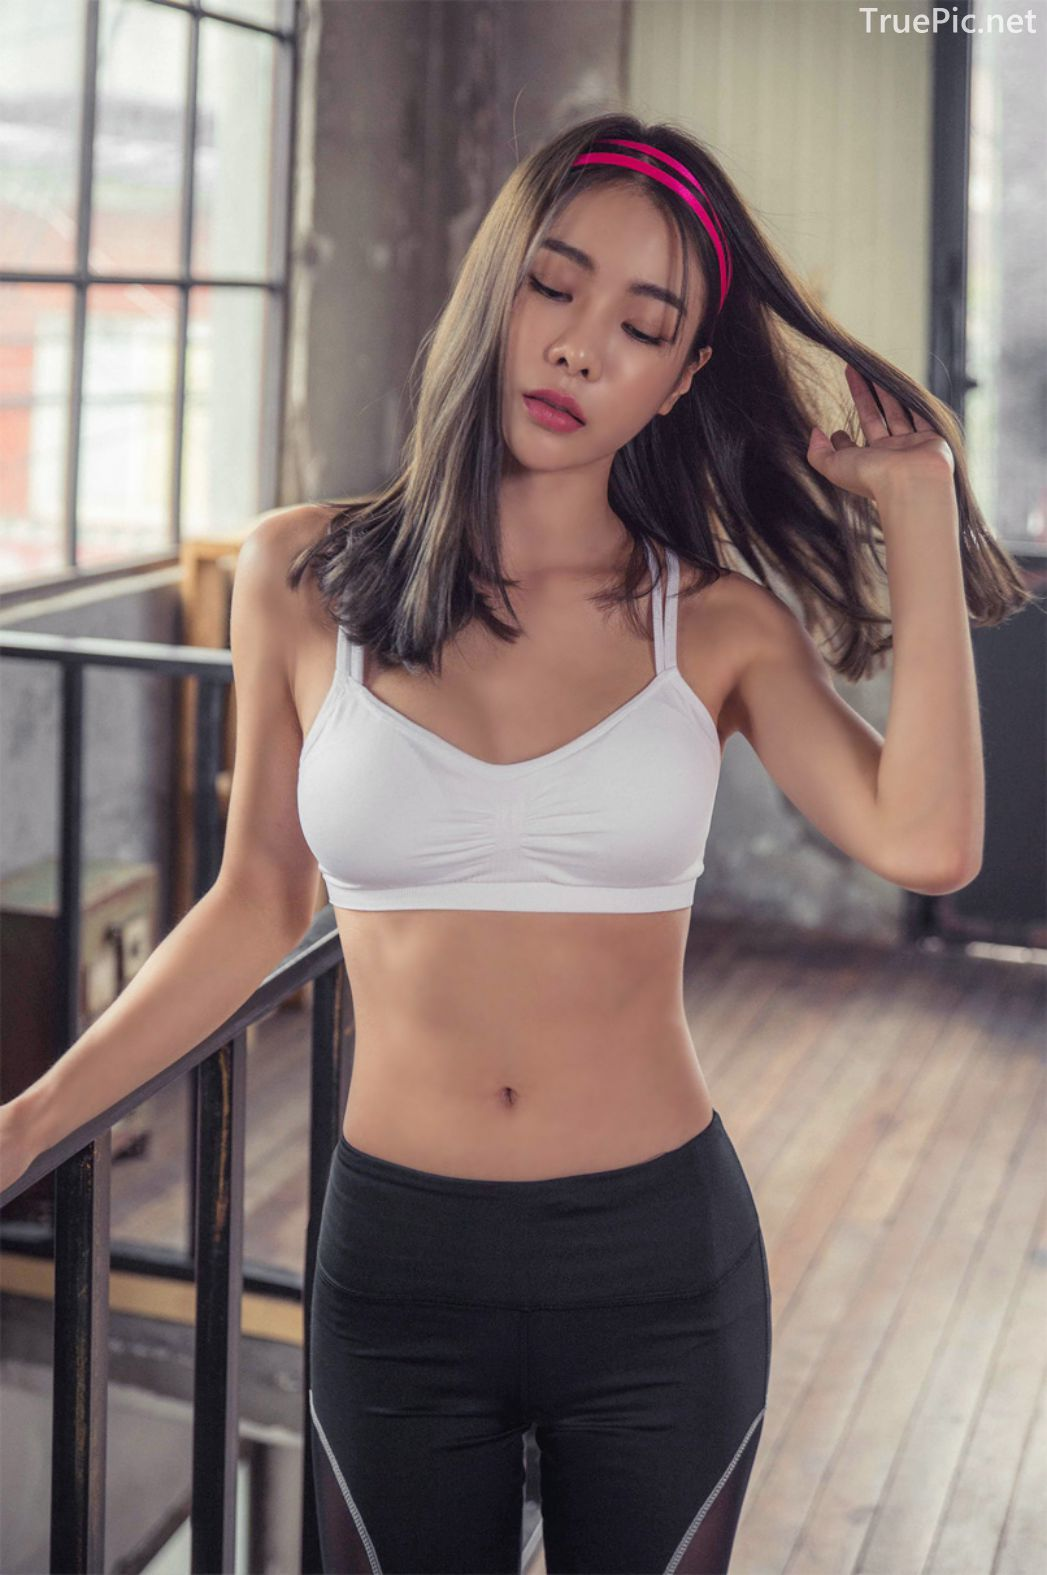 Korean Fashion Model - An Seo Rin - Active Fitnees Set Collection - TruePic.net - Picture 3